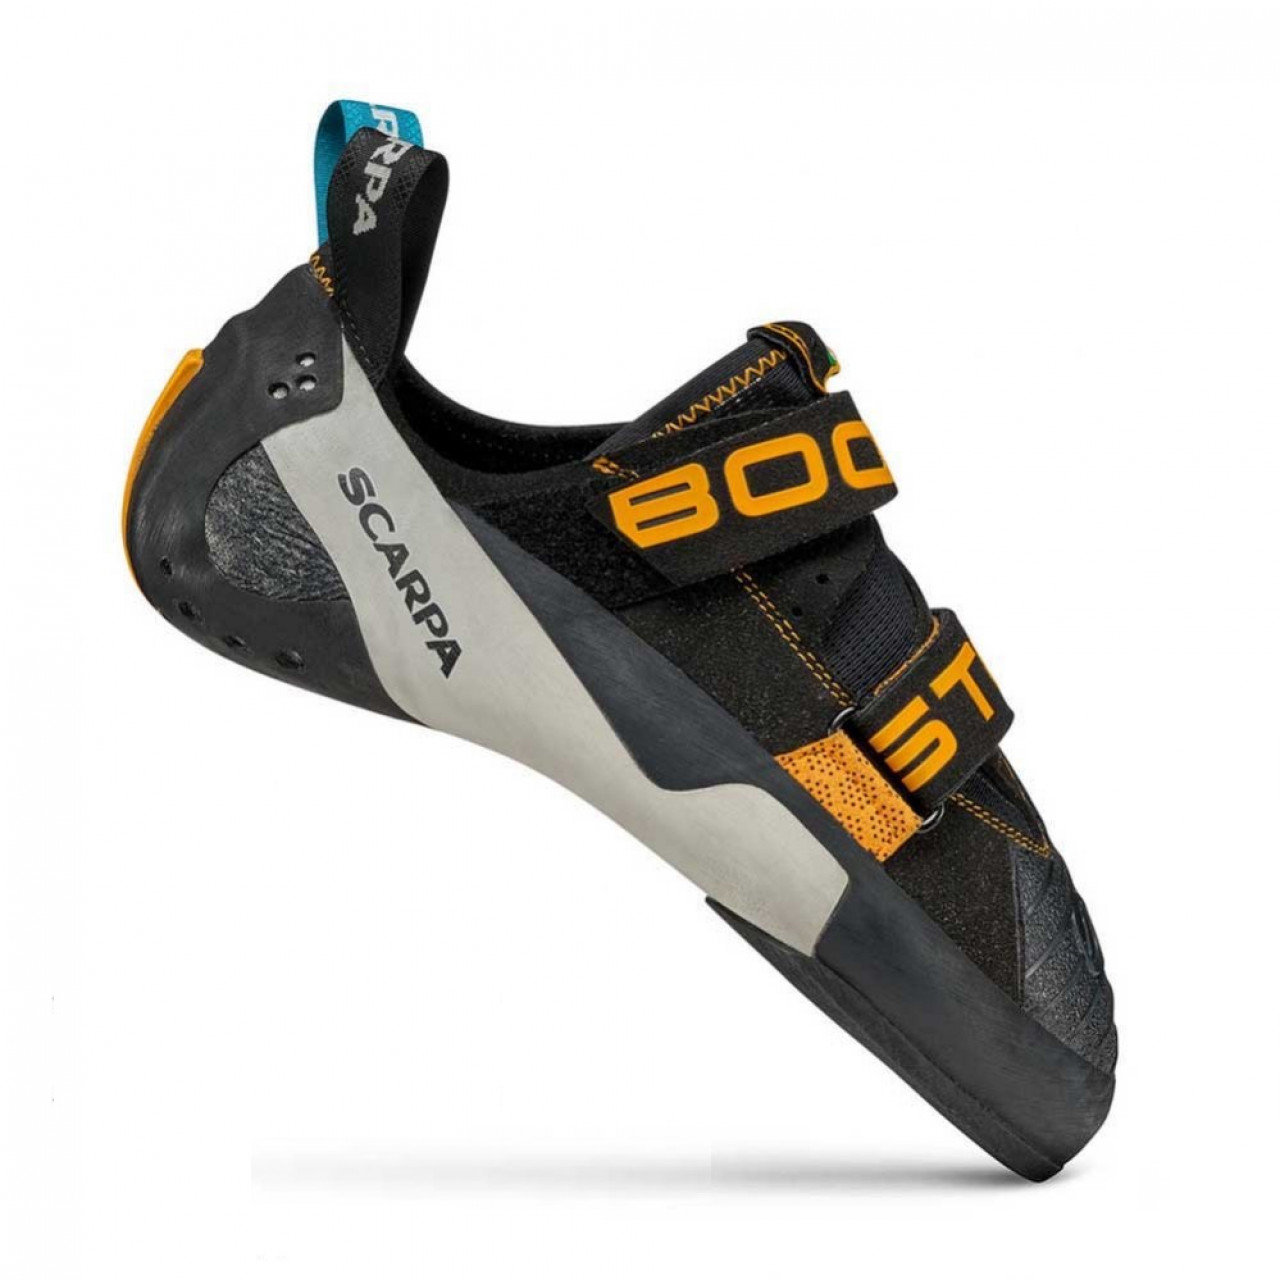 Scarpa Booster   Climbing Shoes